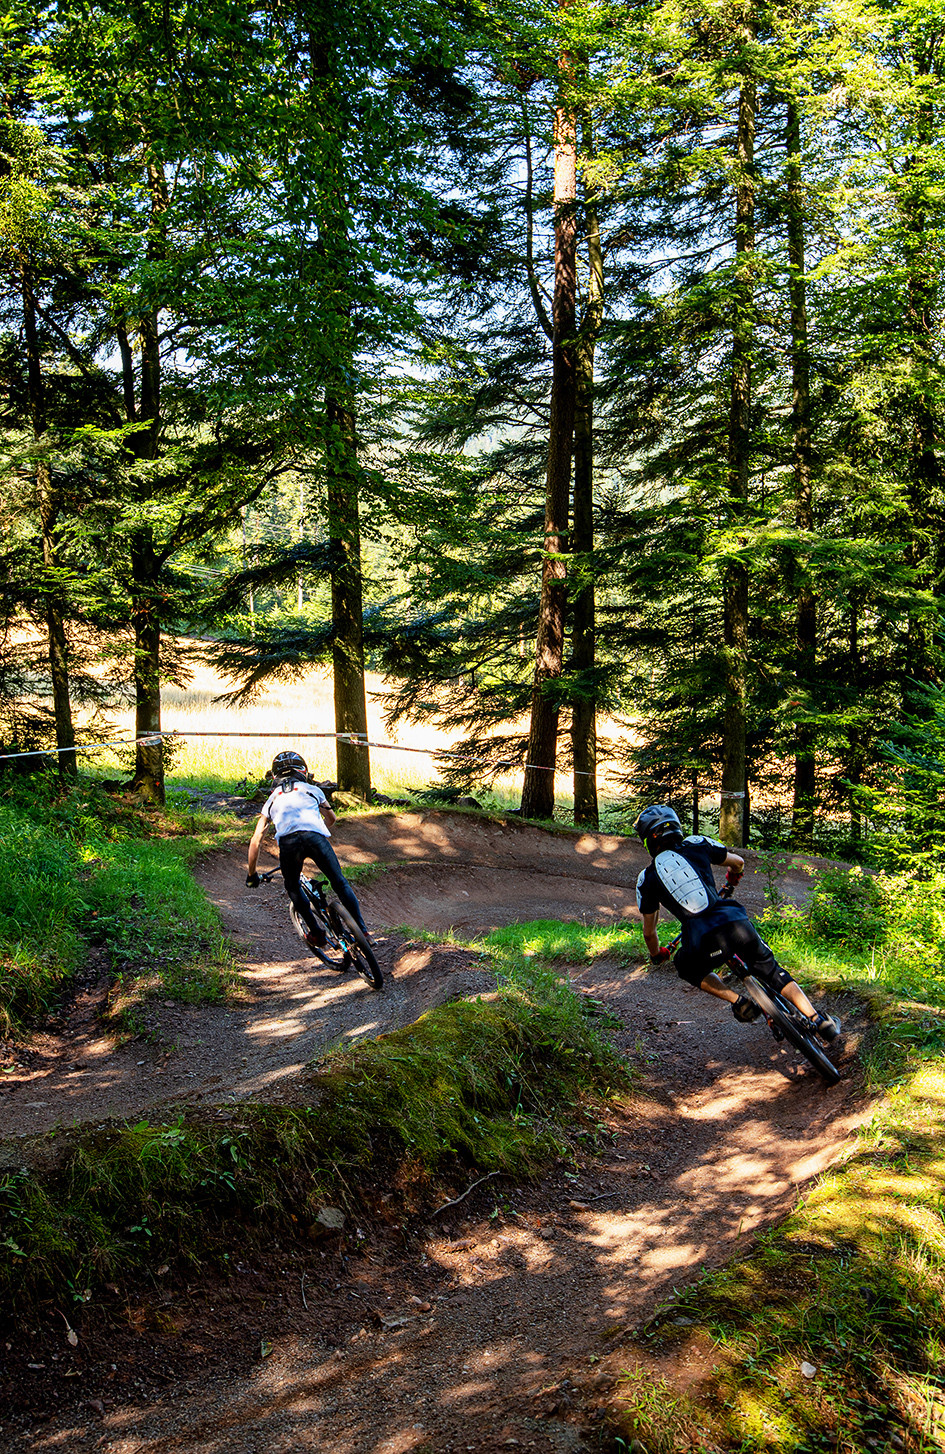 Der Bikepark Bad Wildbad